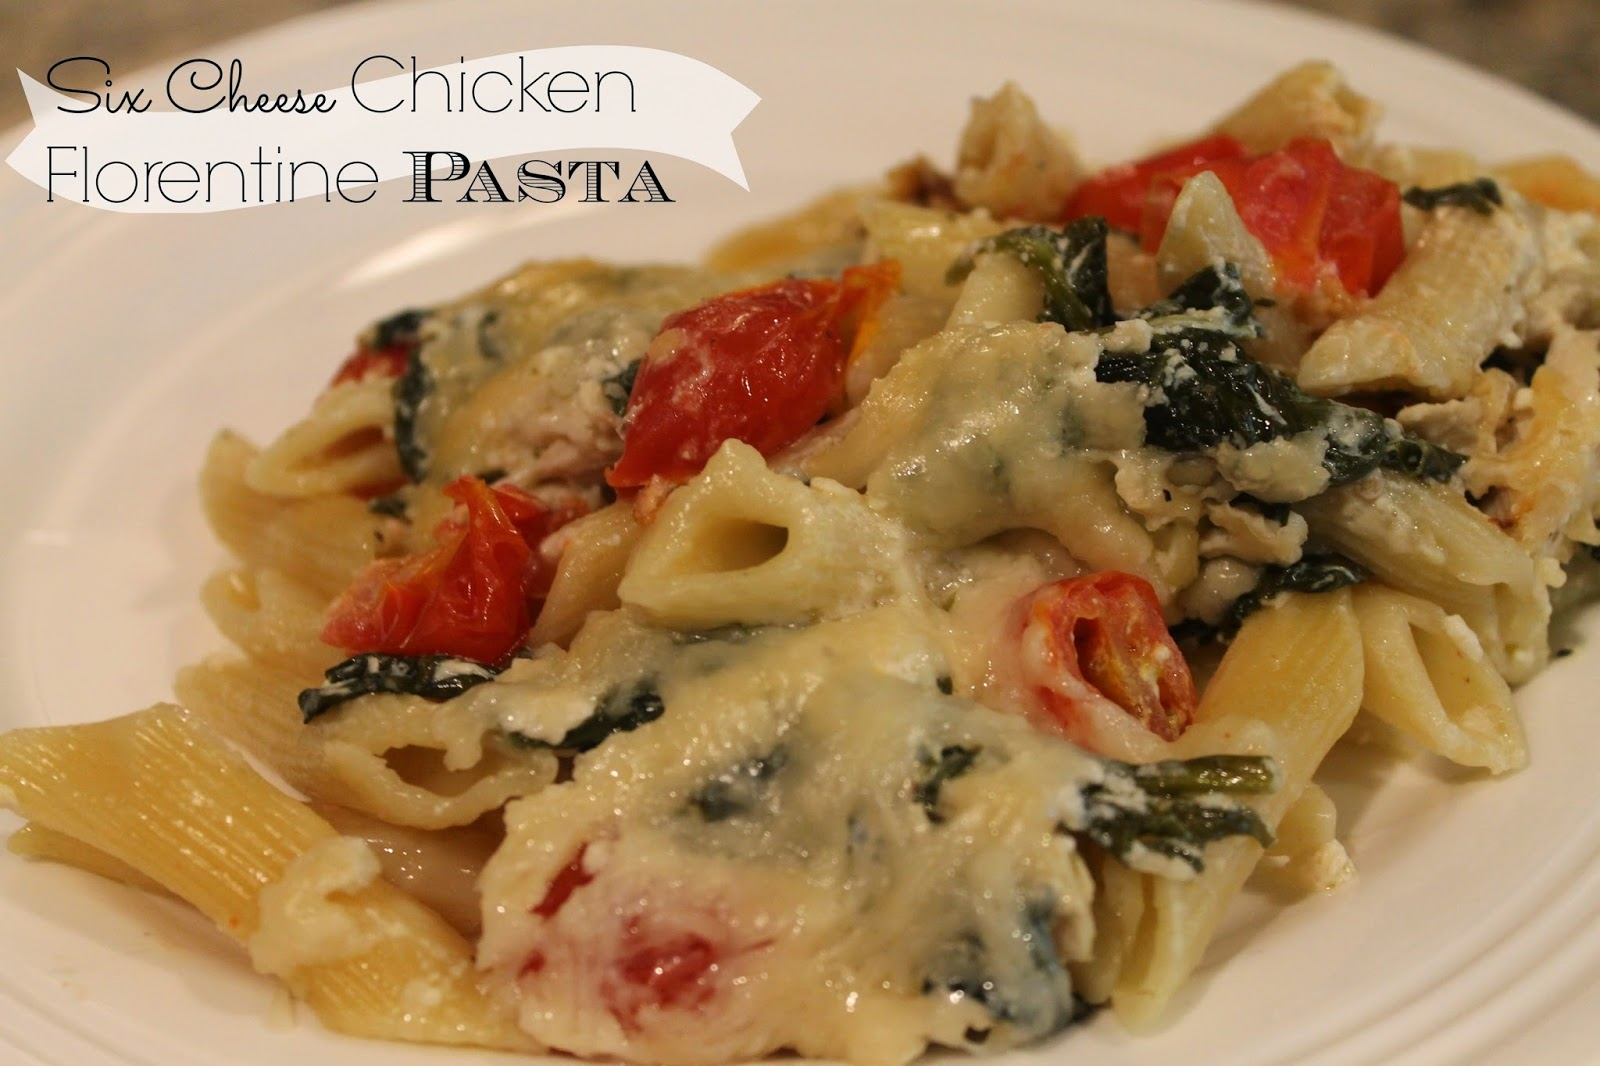 Notes from the Nelsens: Six Cheese Chicken Florentine Pasta